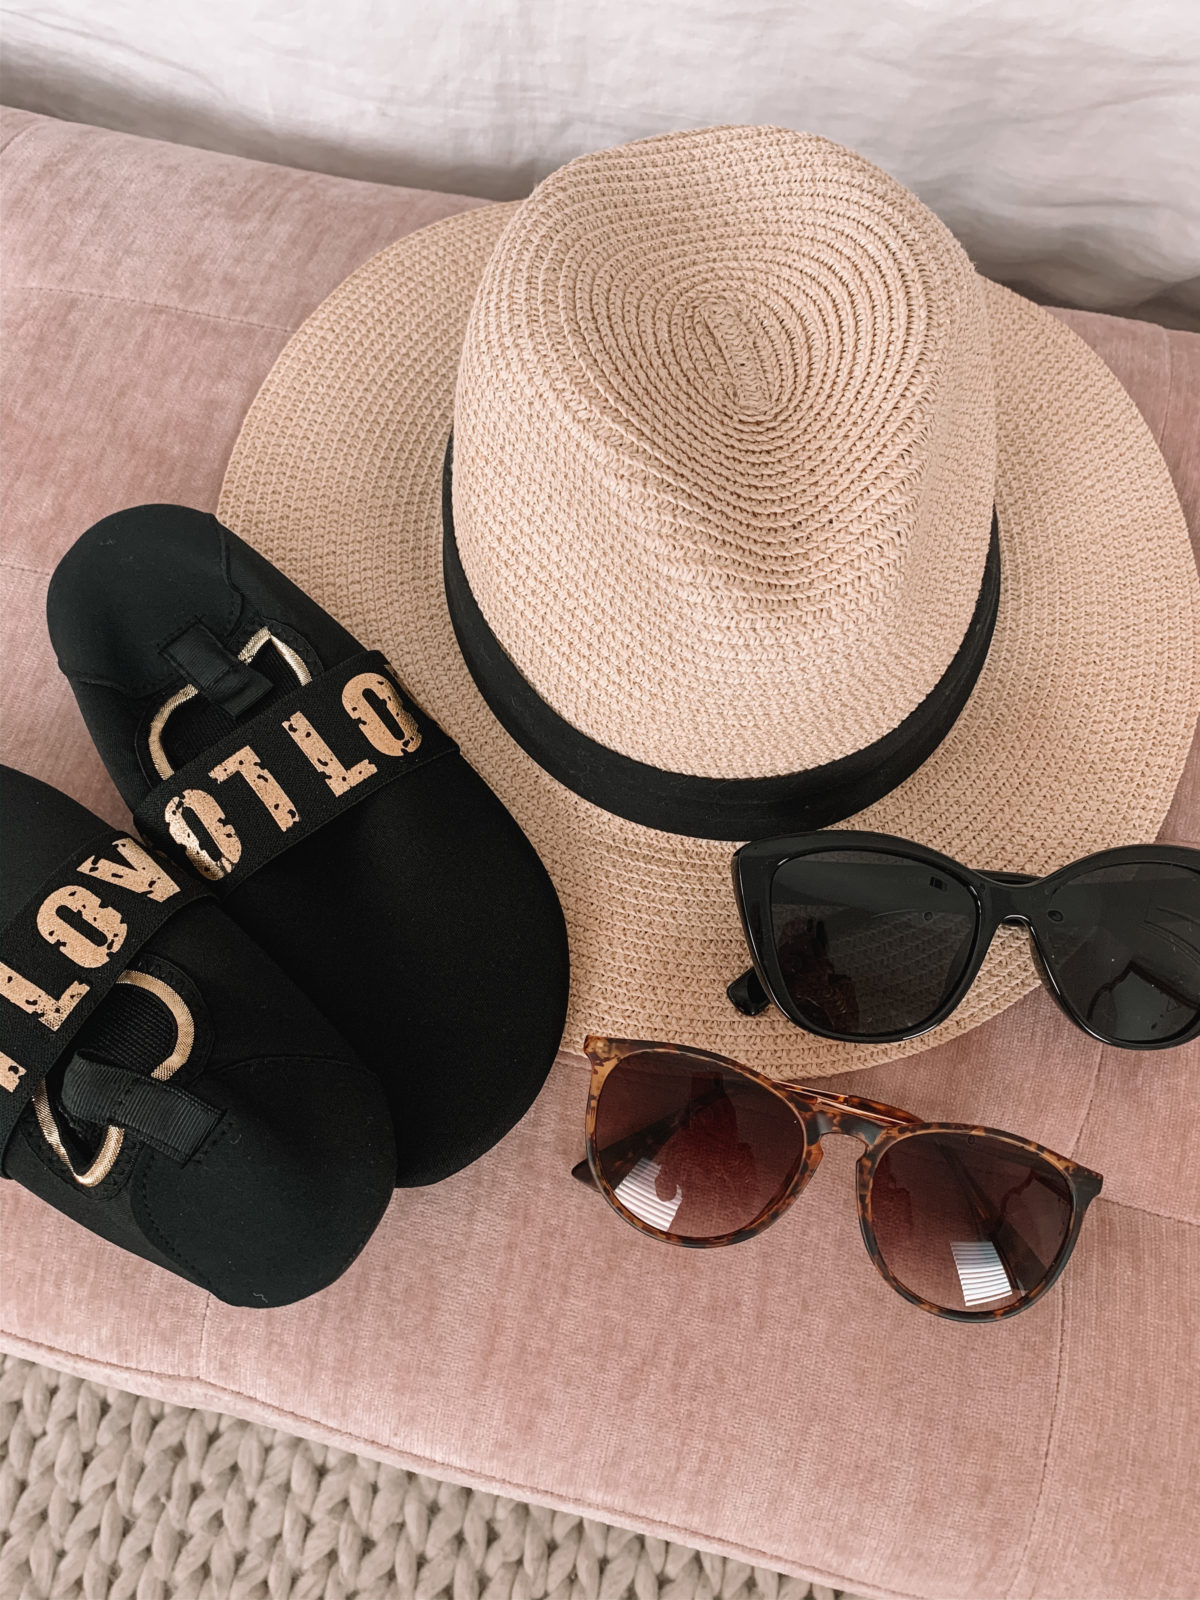 Beach Hat, Love Water Shoes, Tortoise Shell Glasses, Jackie-O Sunglasses